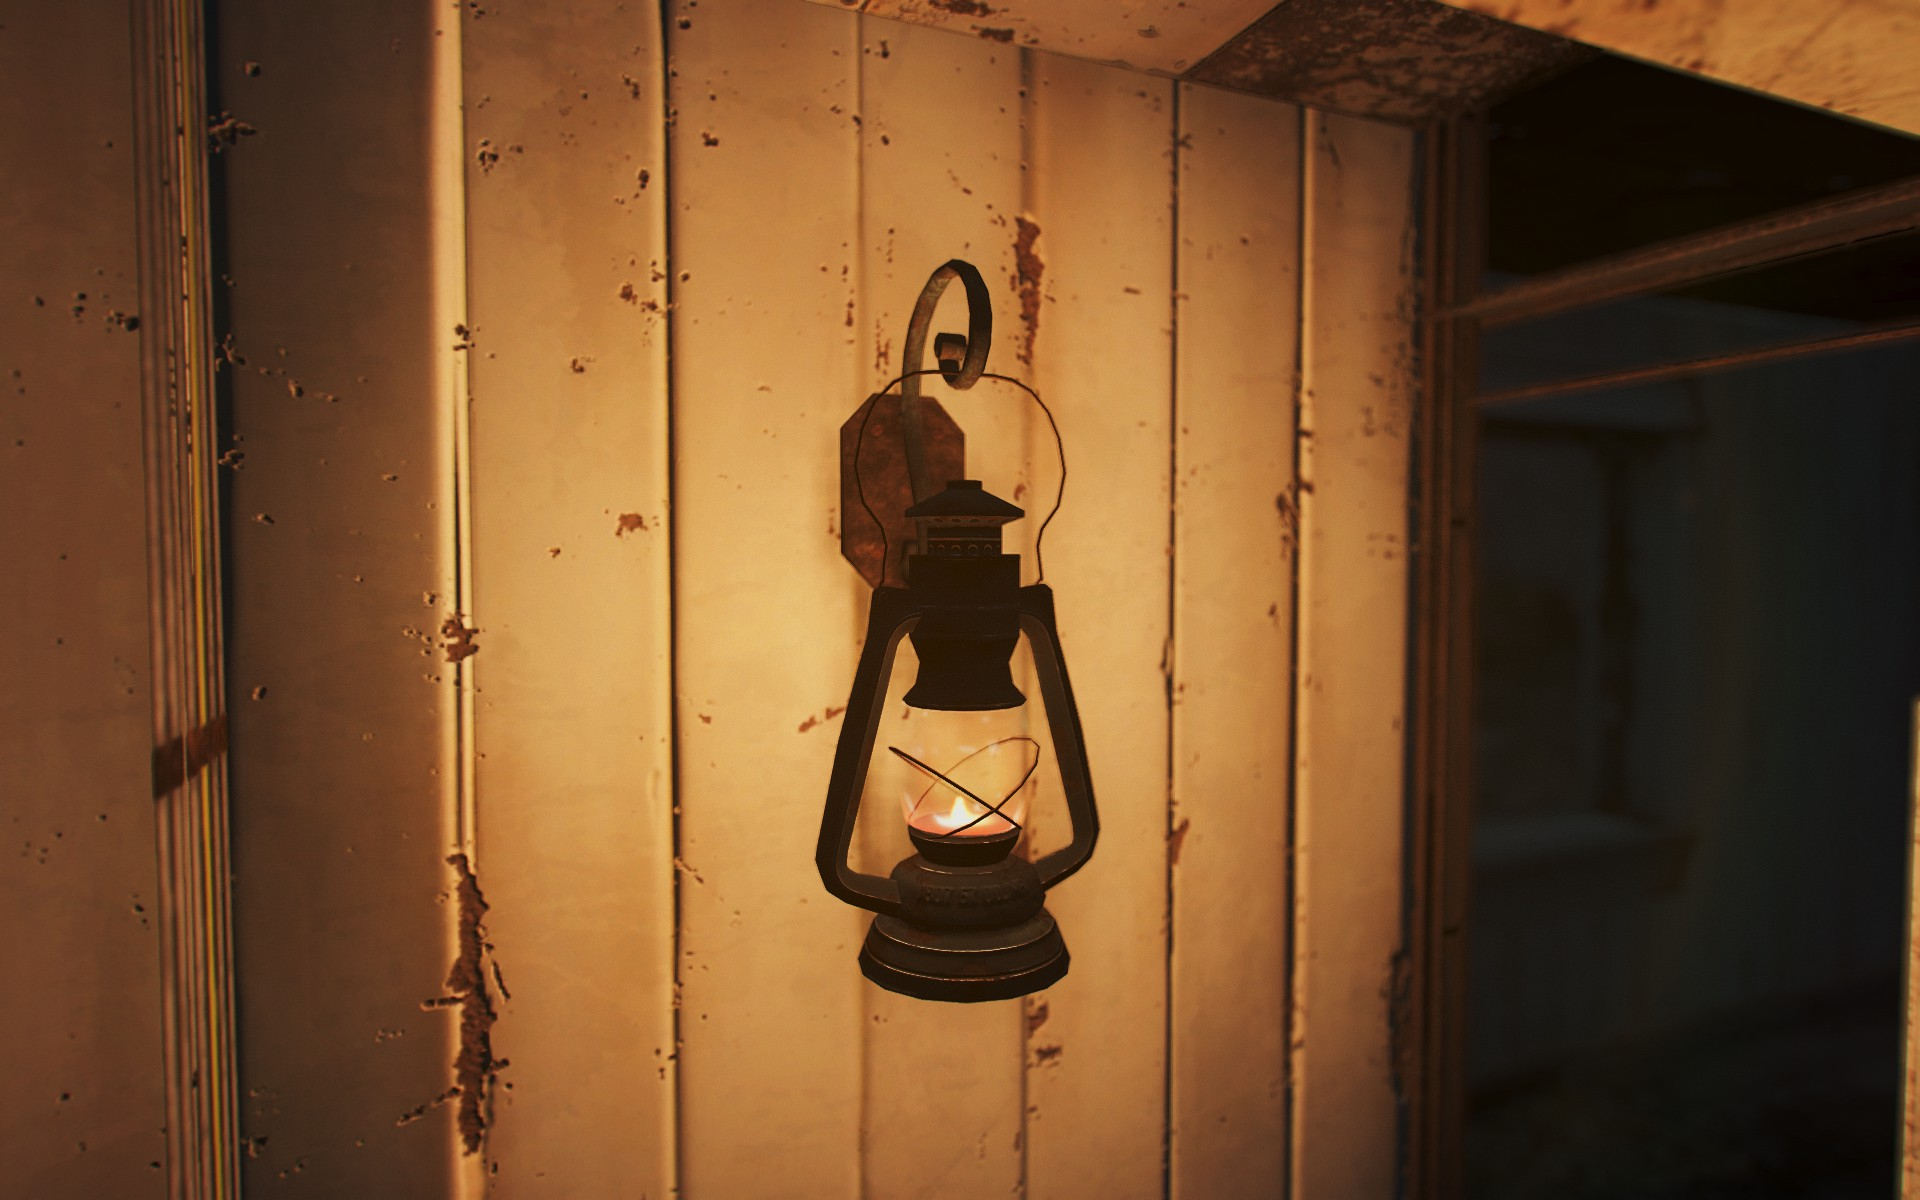 Wall Oil Lamps Spanish Translation at Fallout 4 Nexus - Mods and ...